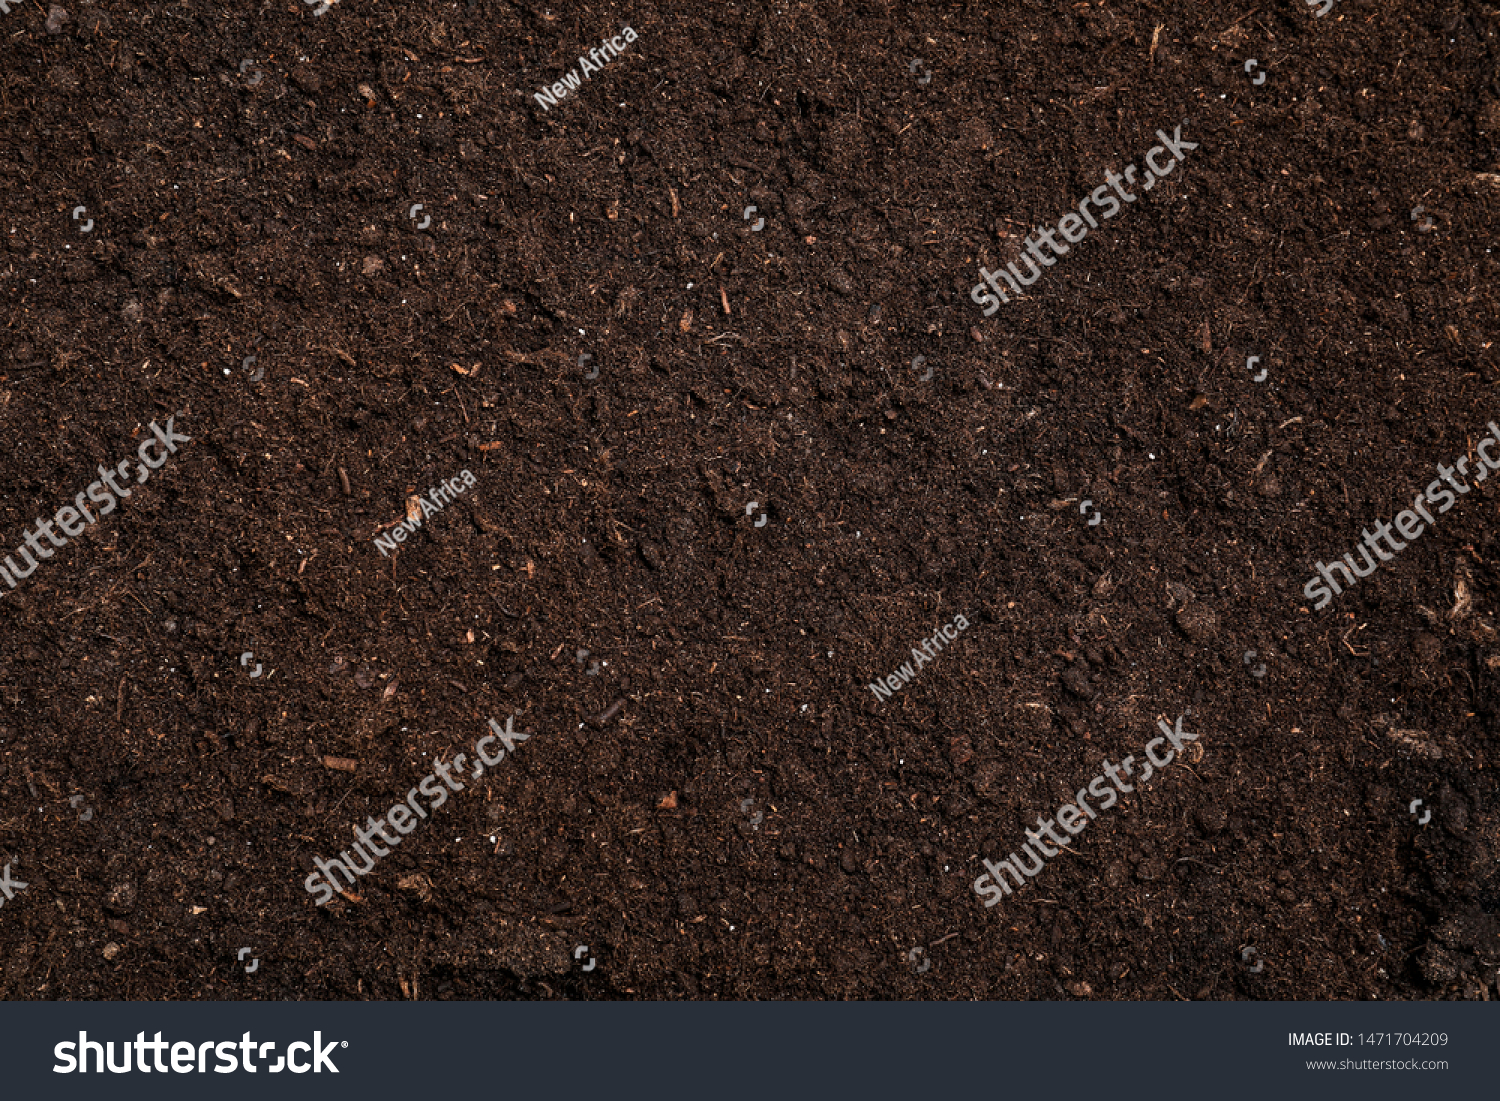 Fresh soil for gardening as background, top view #1471704209